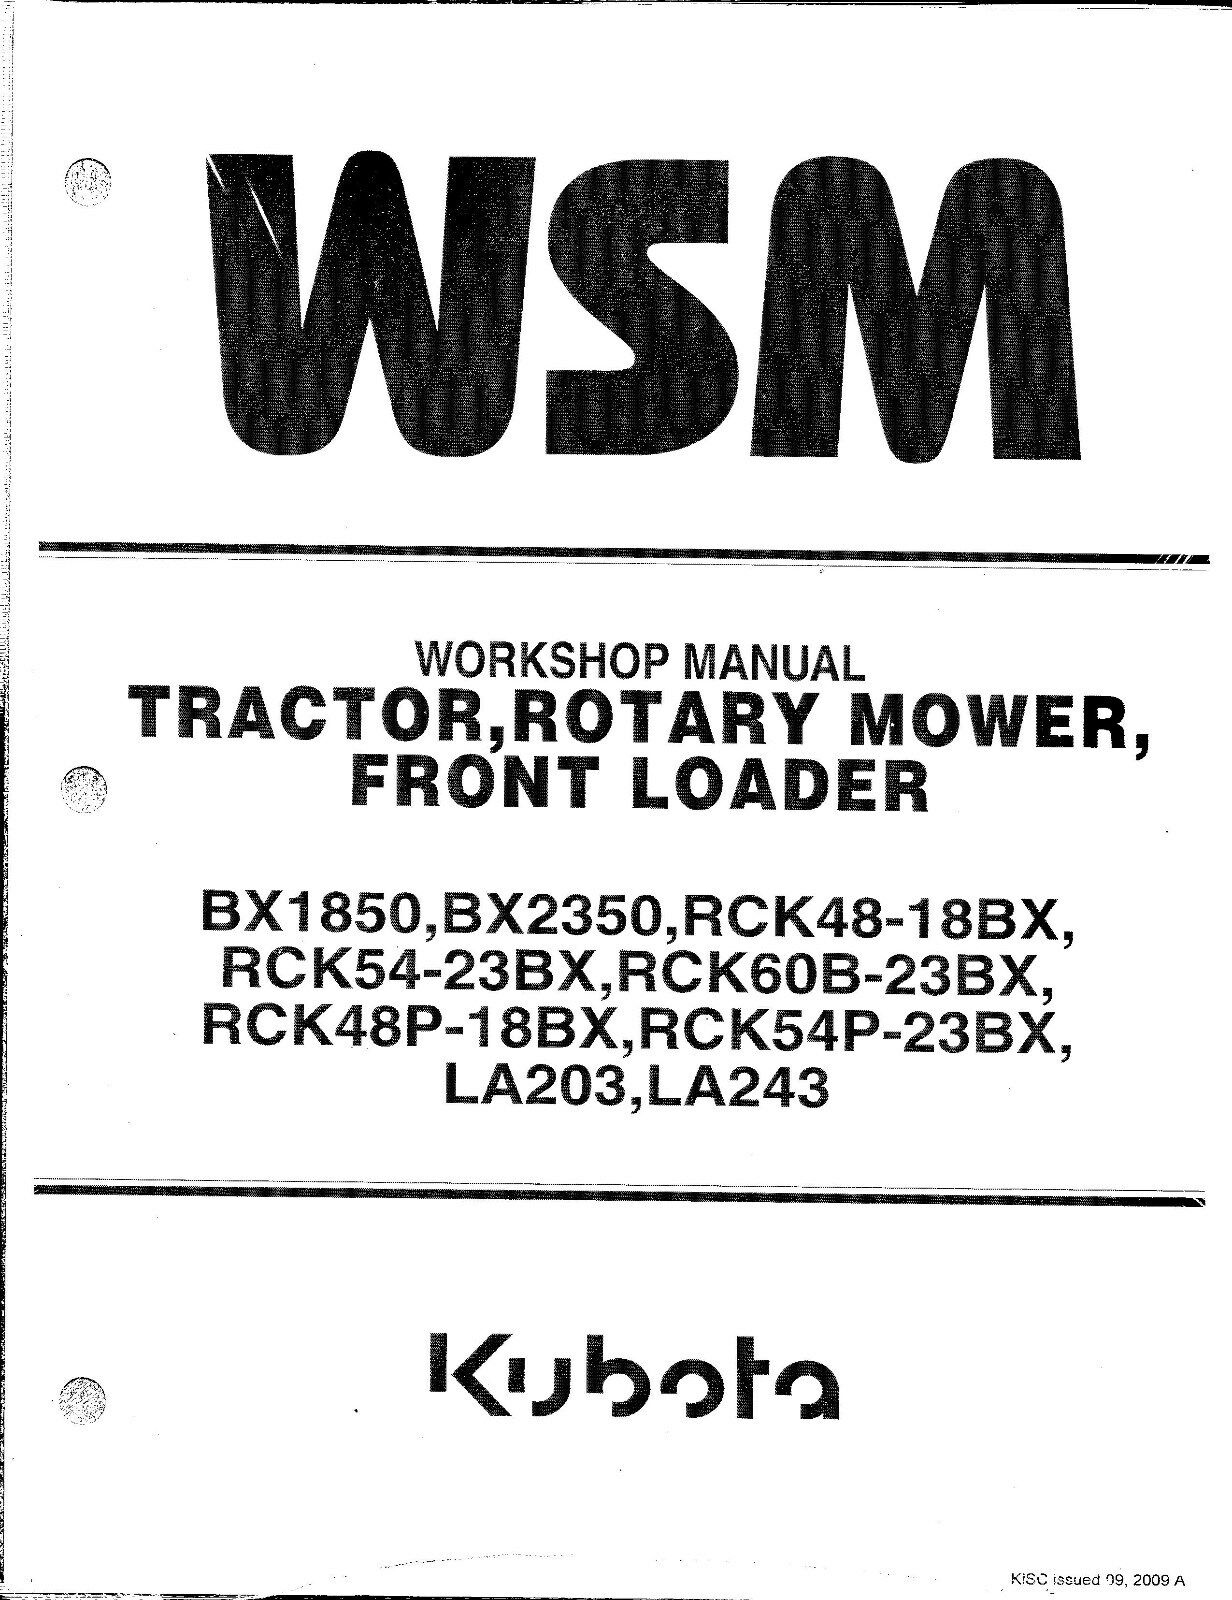 kubota bx1850 bx2350 tractor loader rotary mower workshop manual ebay rh ebay com Kubota BX2350 Transmission Diagram Kubota Parts